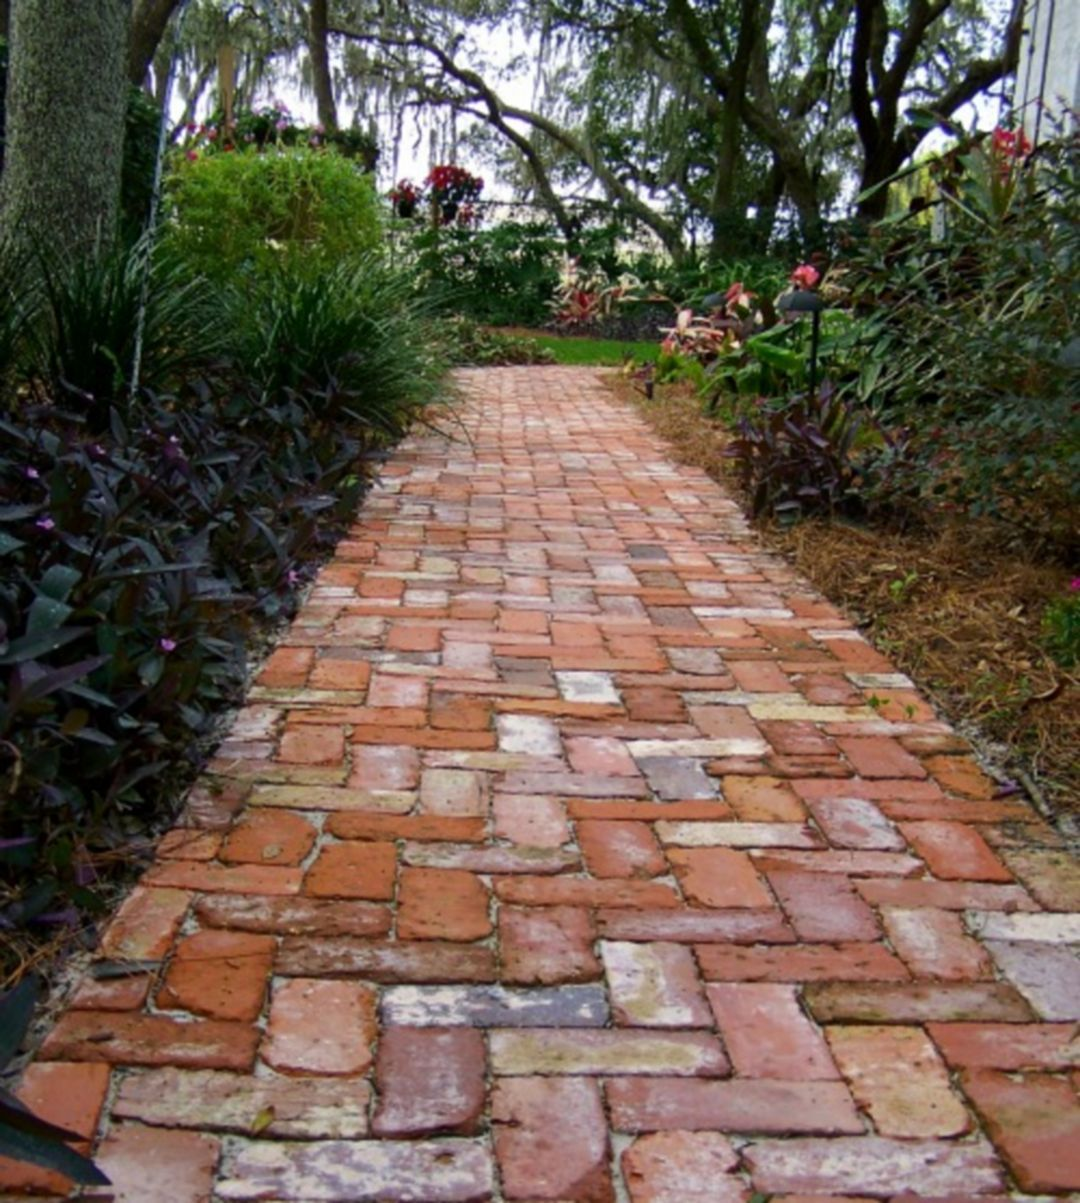 Making A Wonderful Garden Path Ideas Using Stones: 25+ Top Unique Brick Patterns Patio Ideas For Beautiful